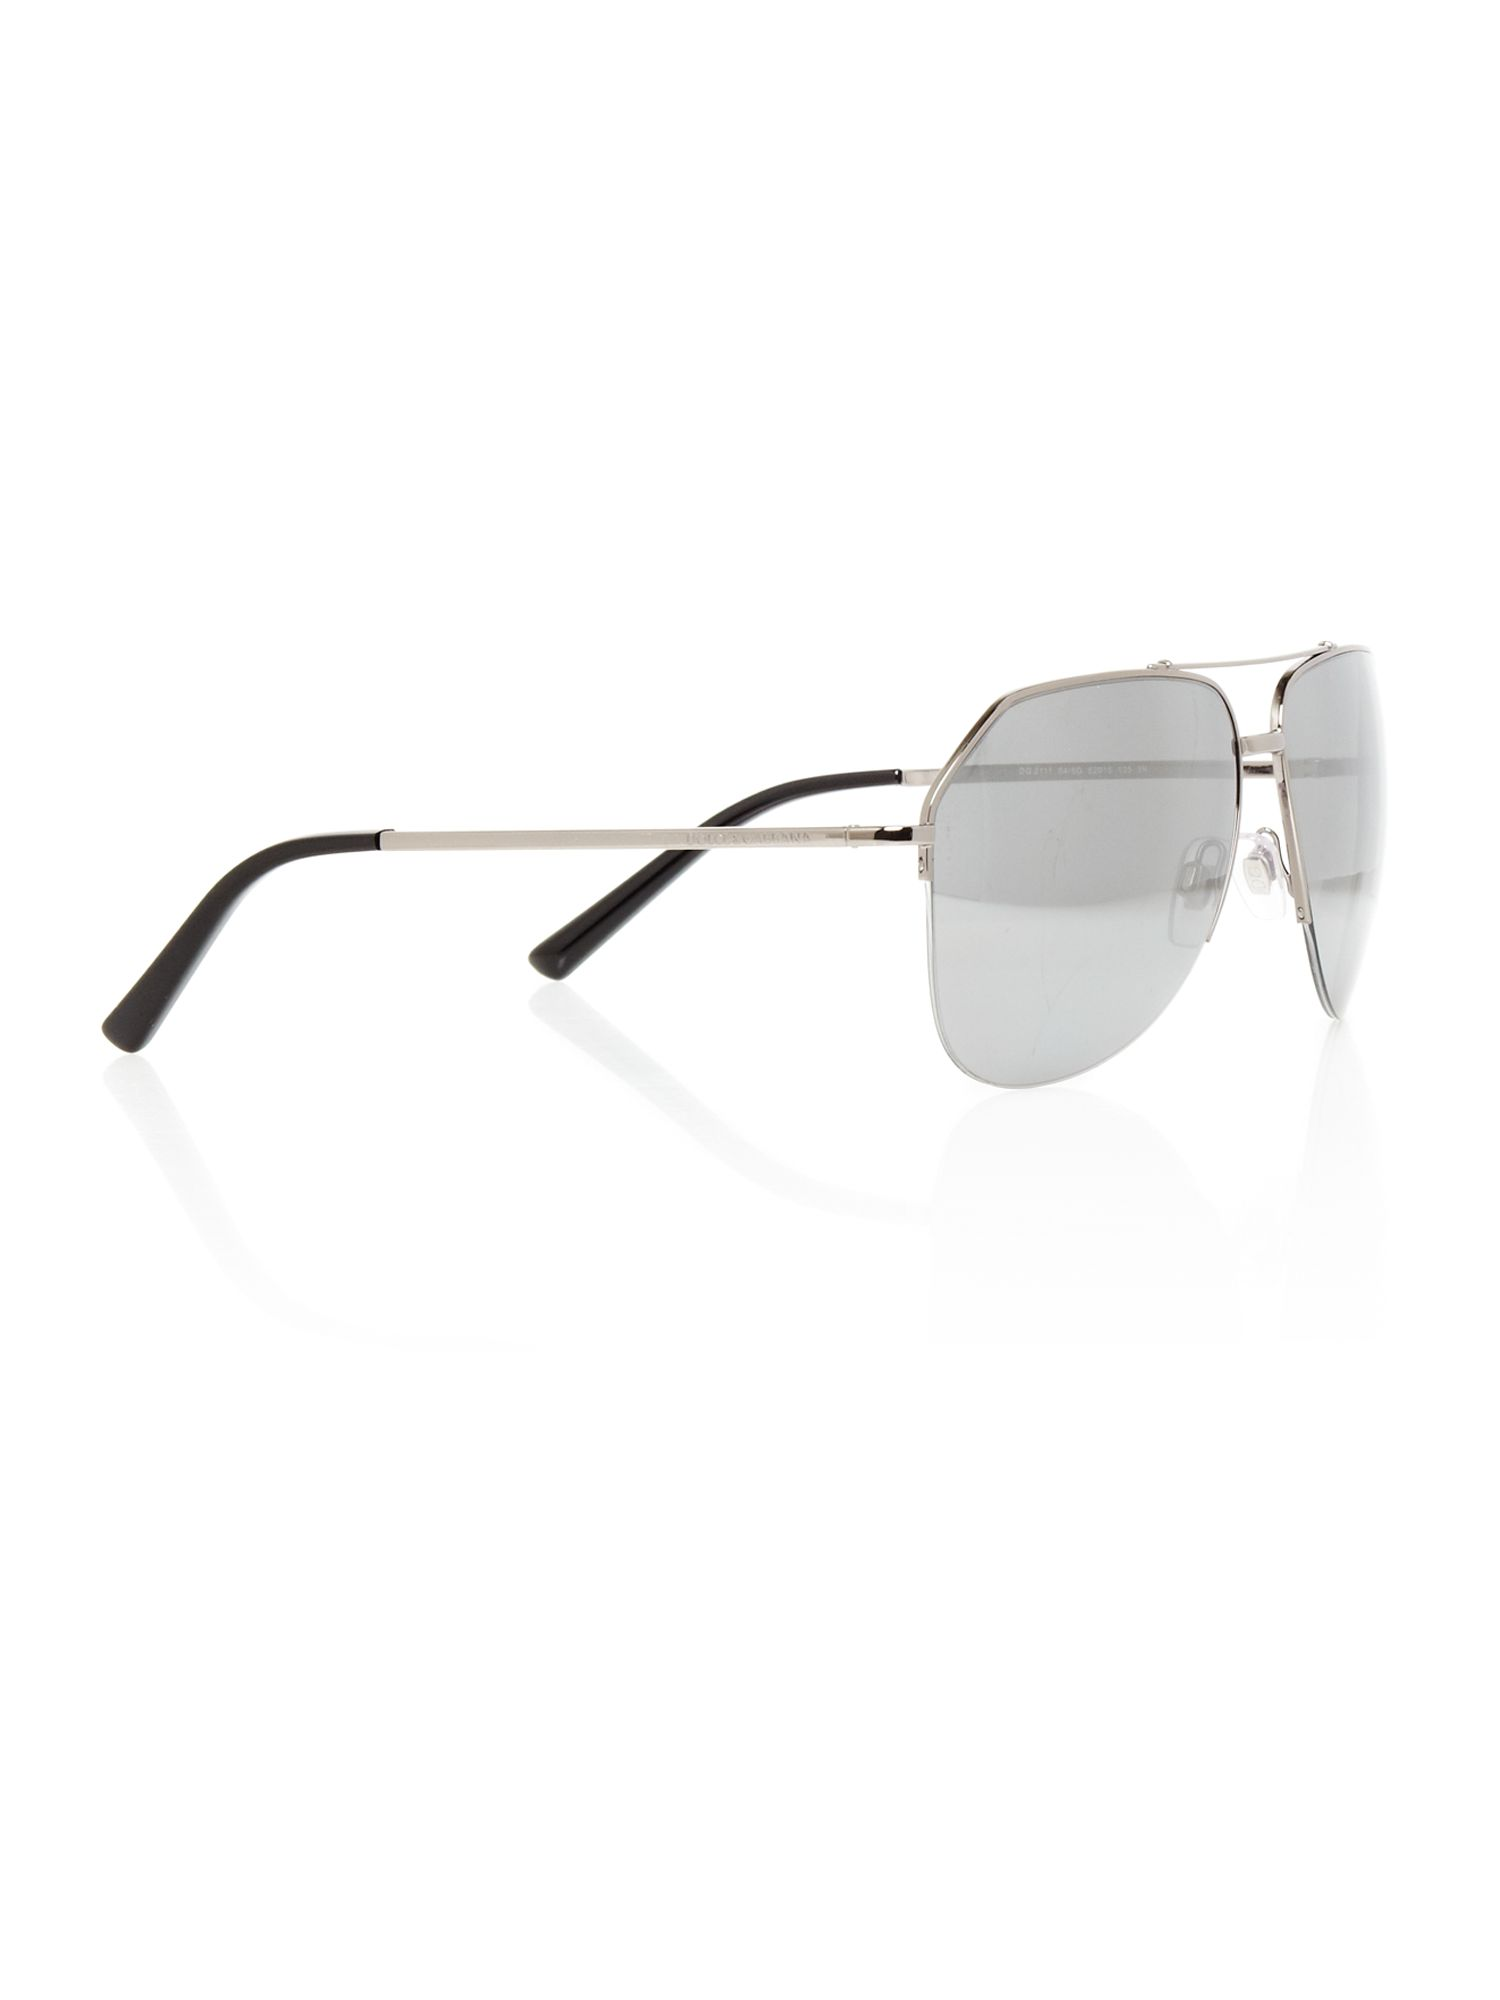 Mens DG2111 Iconic Evolution Gunmetal Sunglasses